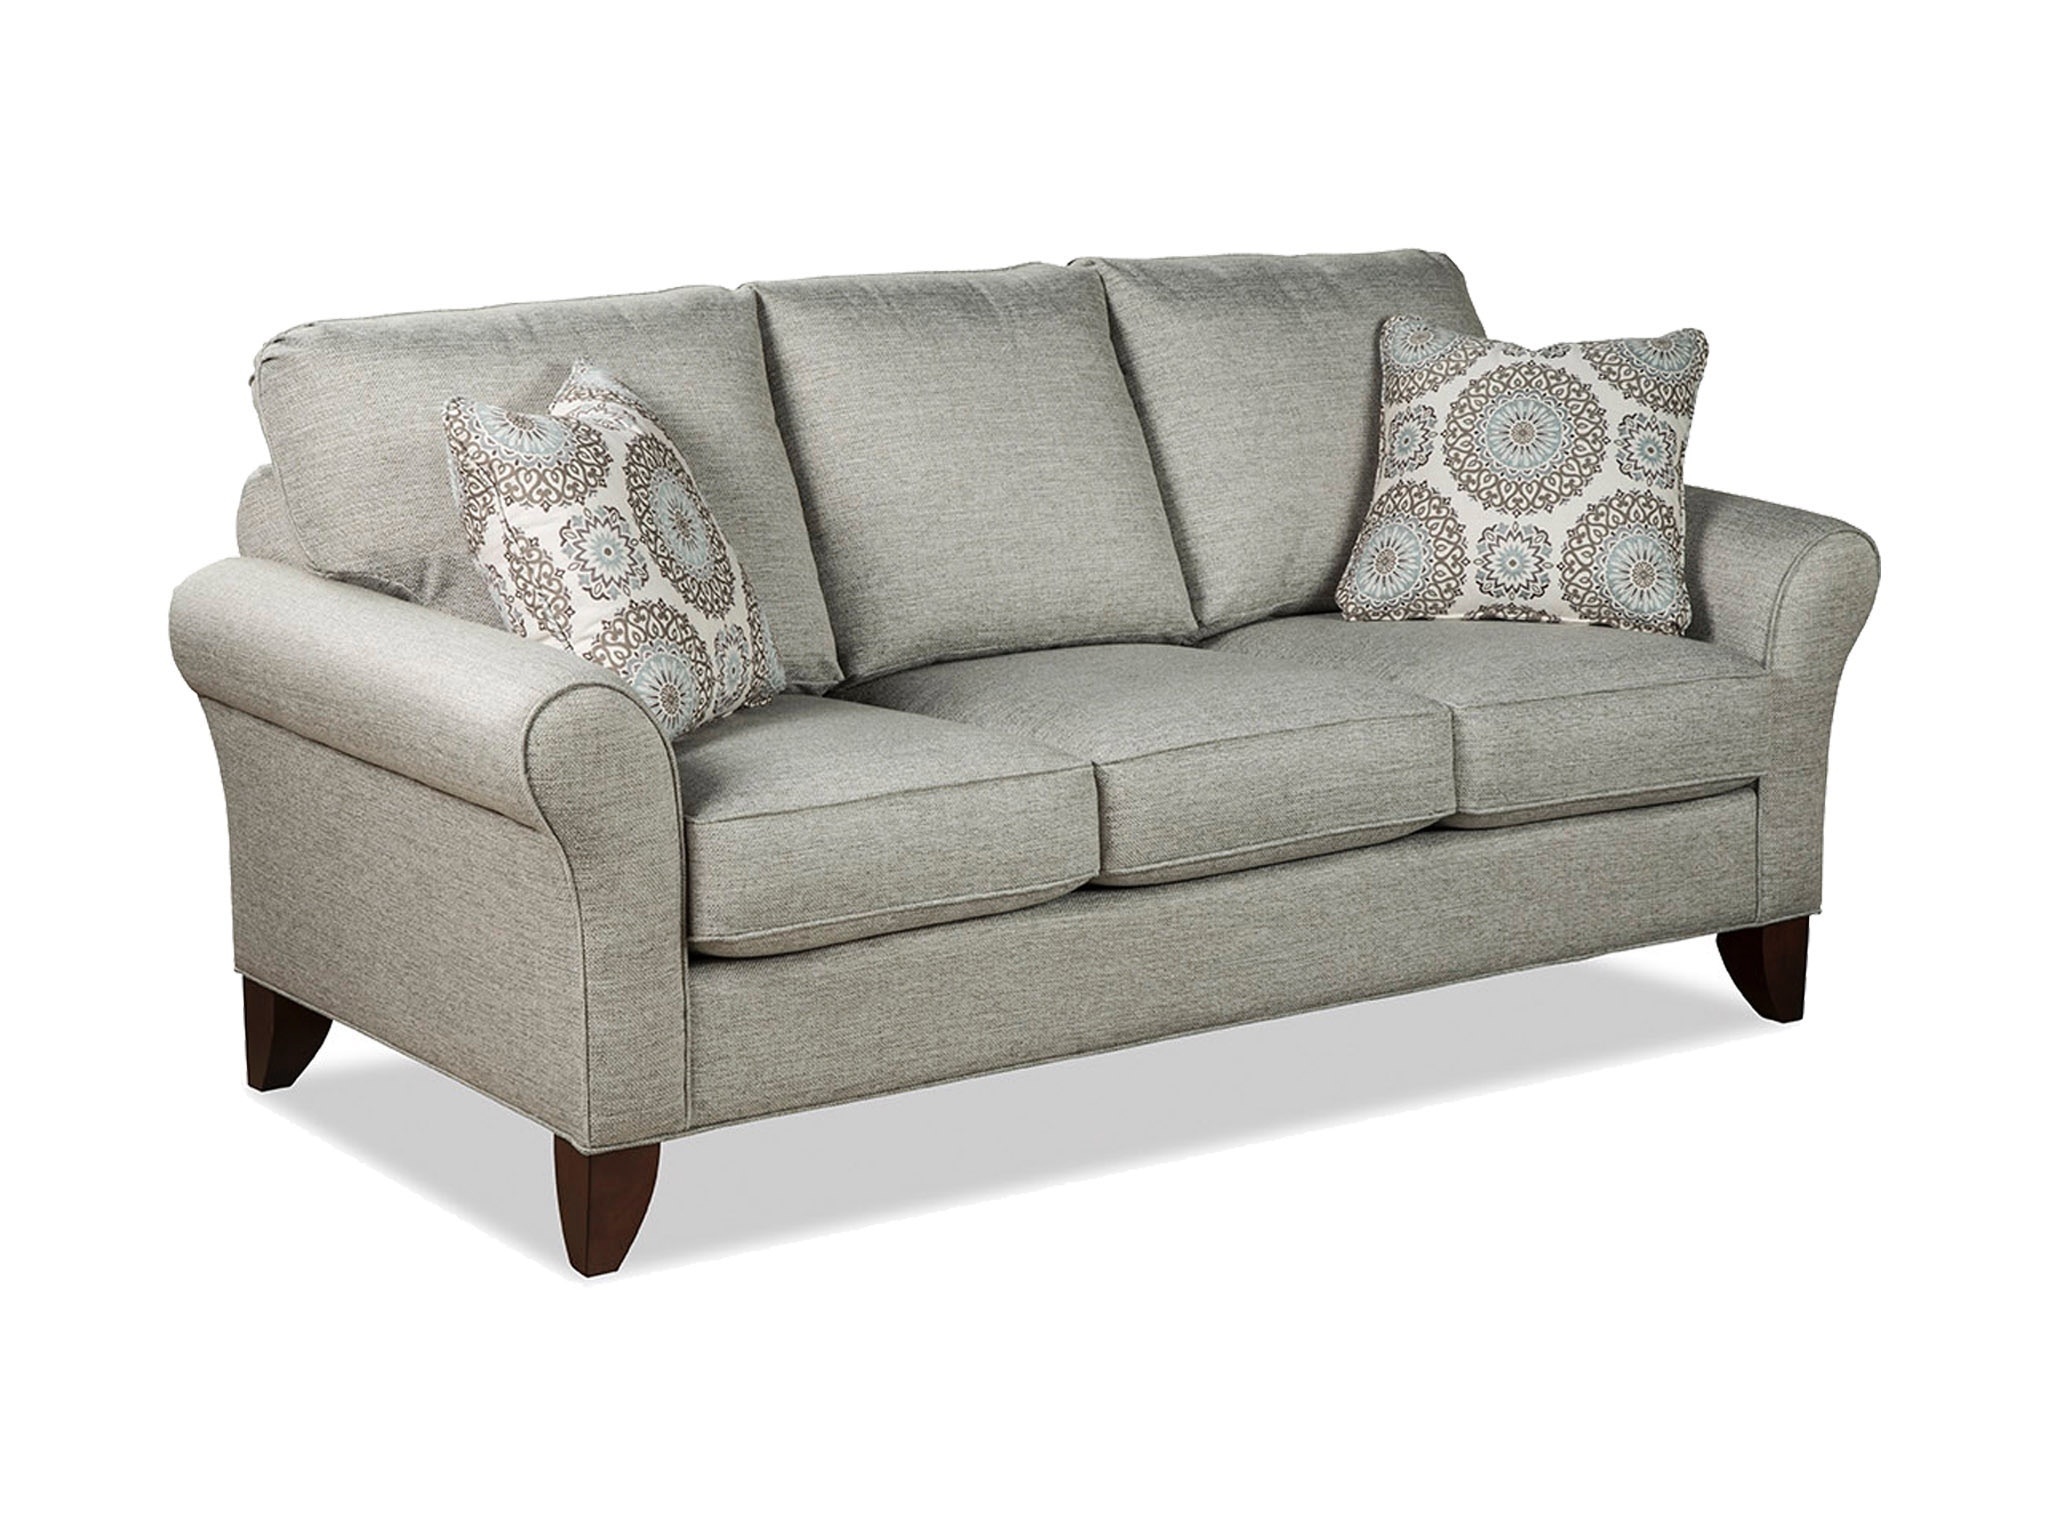 Delicieux Cozy Life Living Room Sofa 755150 At Alpena Furniture